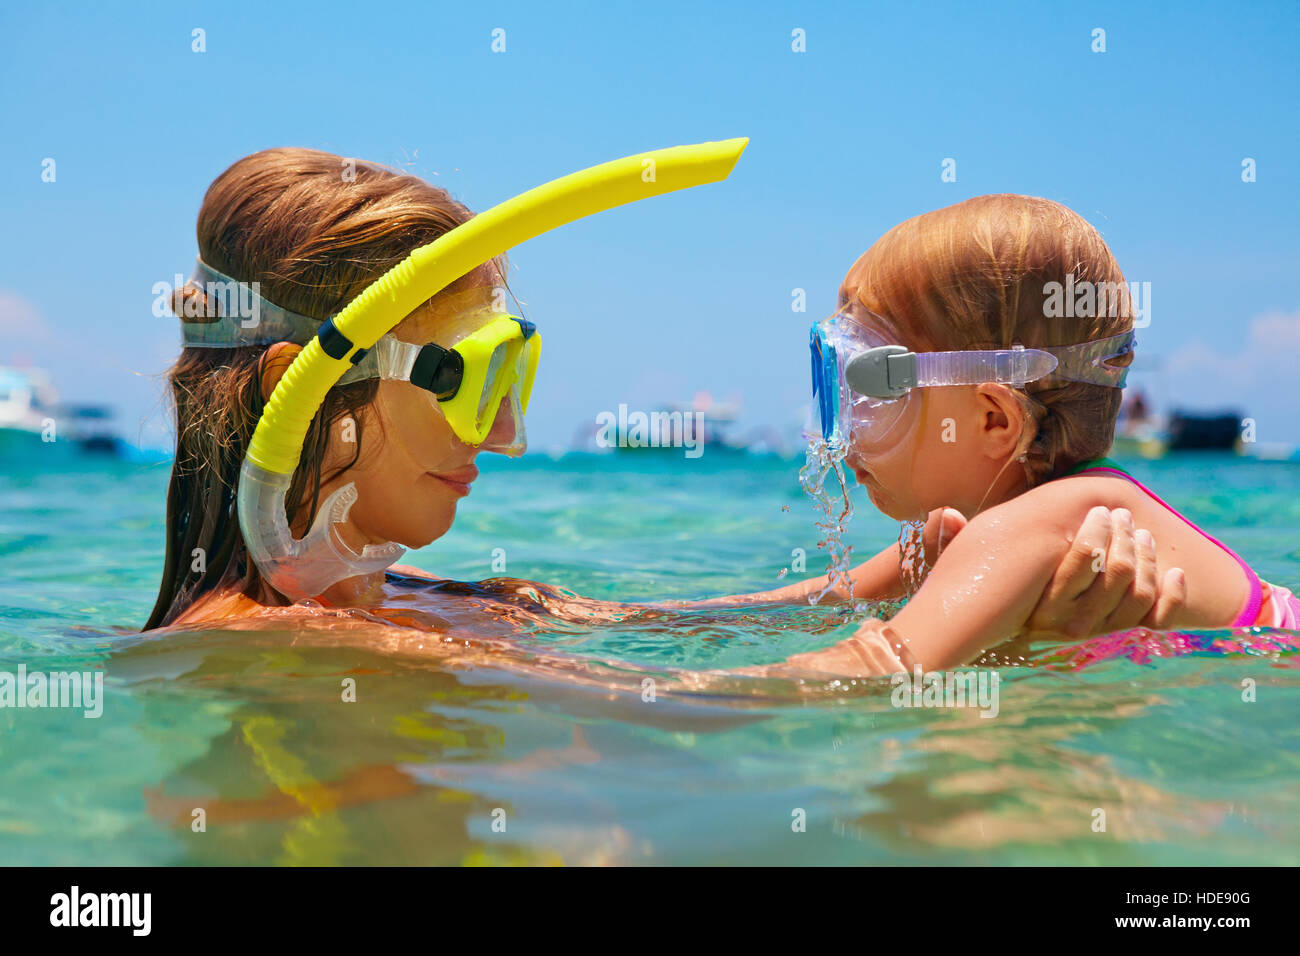 Happy family. Mother with baby girl dive underwater in sea pool. Healthy lifestyle, active parent, water sport outdoor - Stock Image